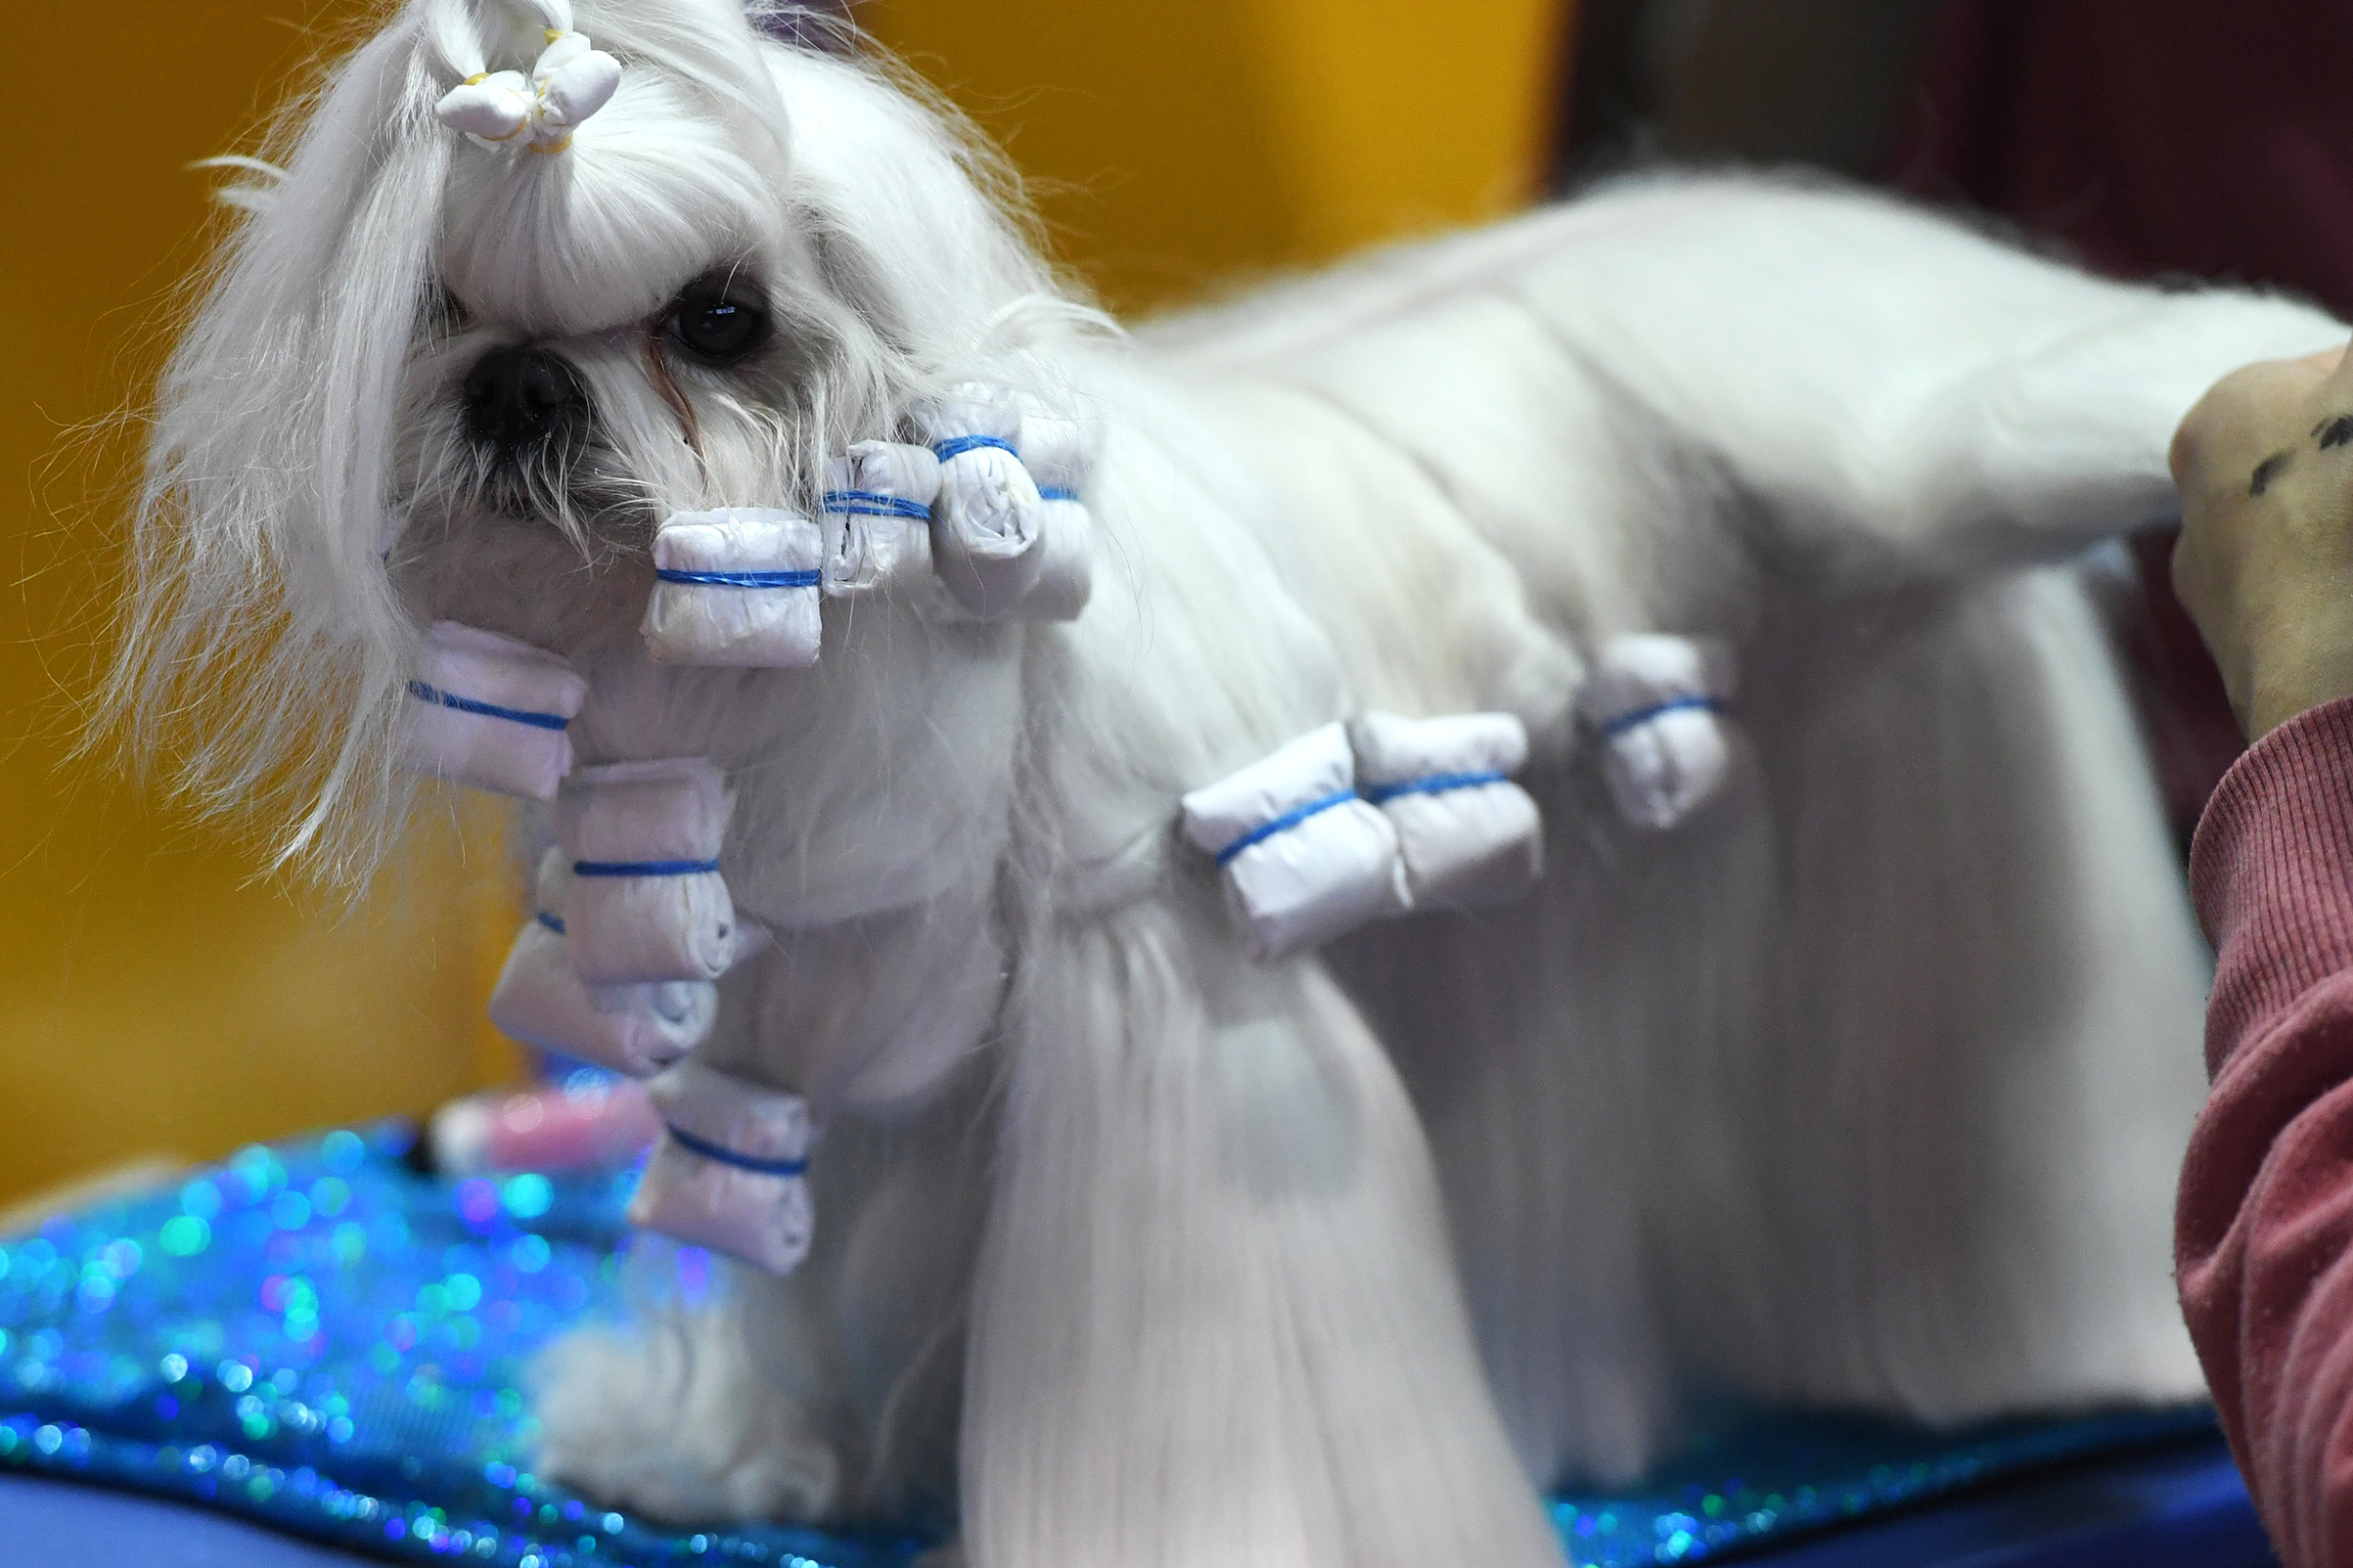 A Maltese waits in the benching area on Day One of competition at the Westminster Kennel Club 142nd Annual Dog Show in New York on Feb. 12, 2018.